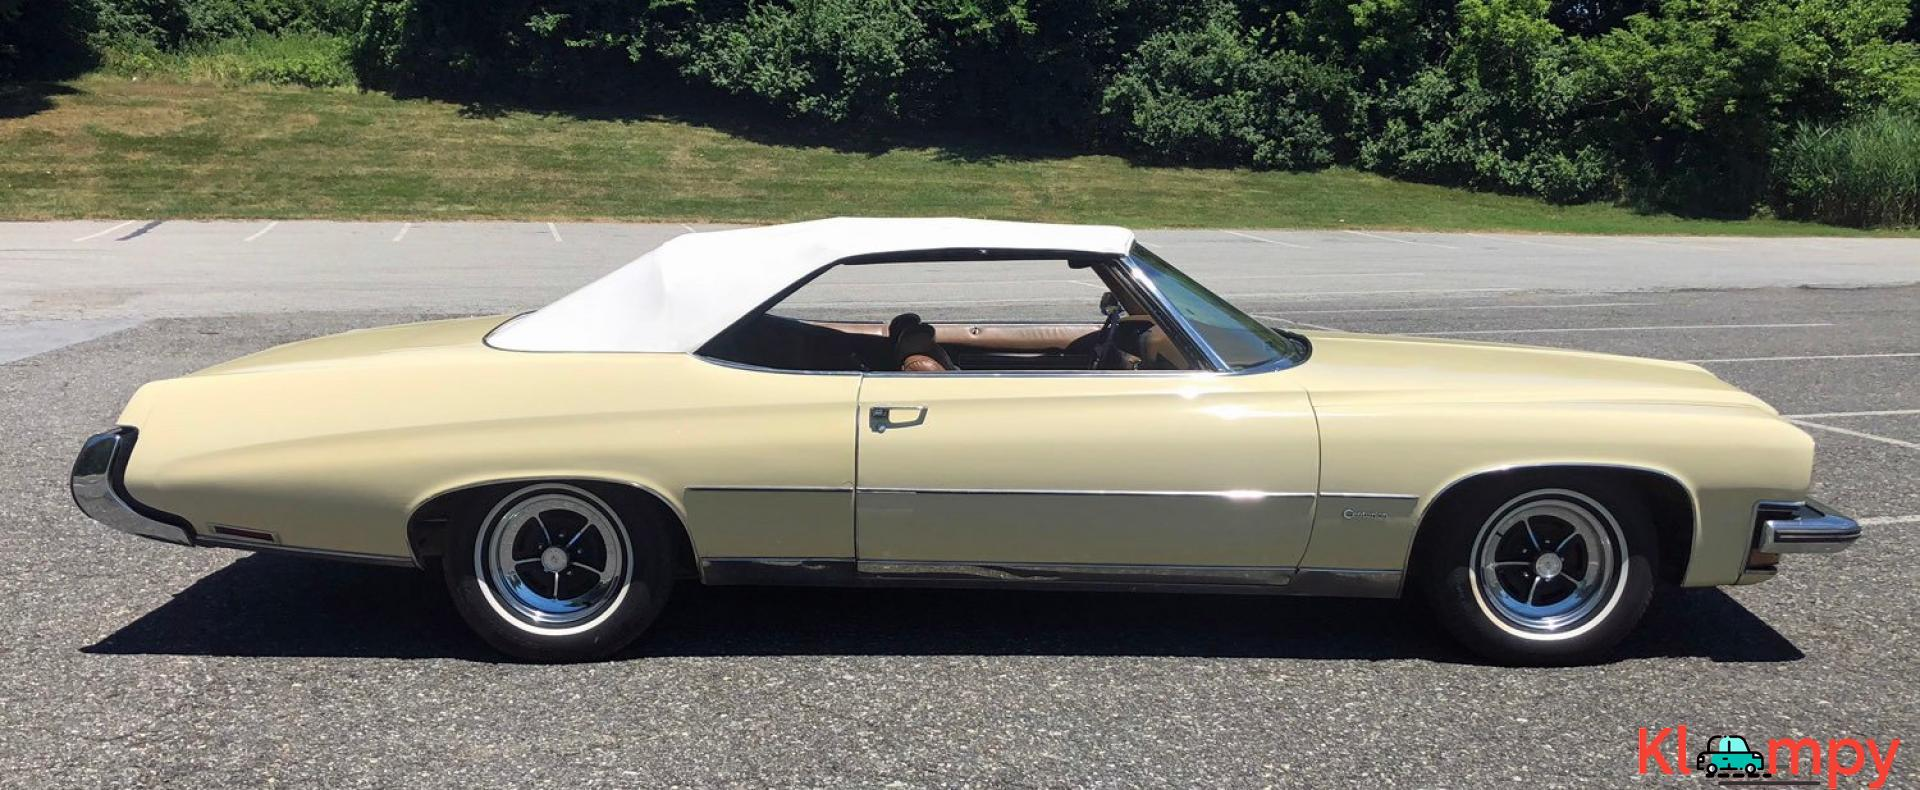 1973 Buick Centurion 350 Convertible V8 - 6/20